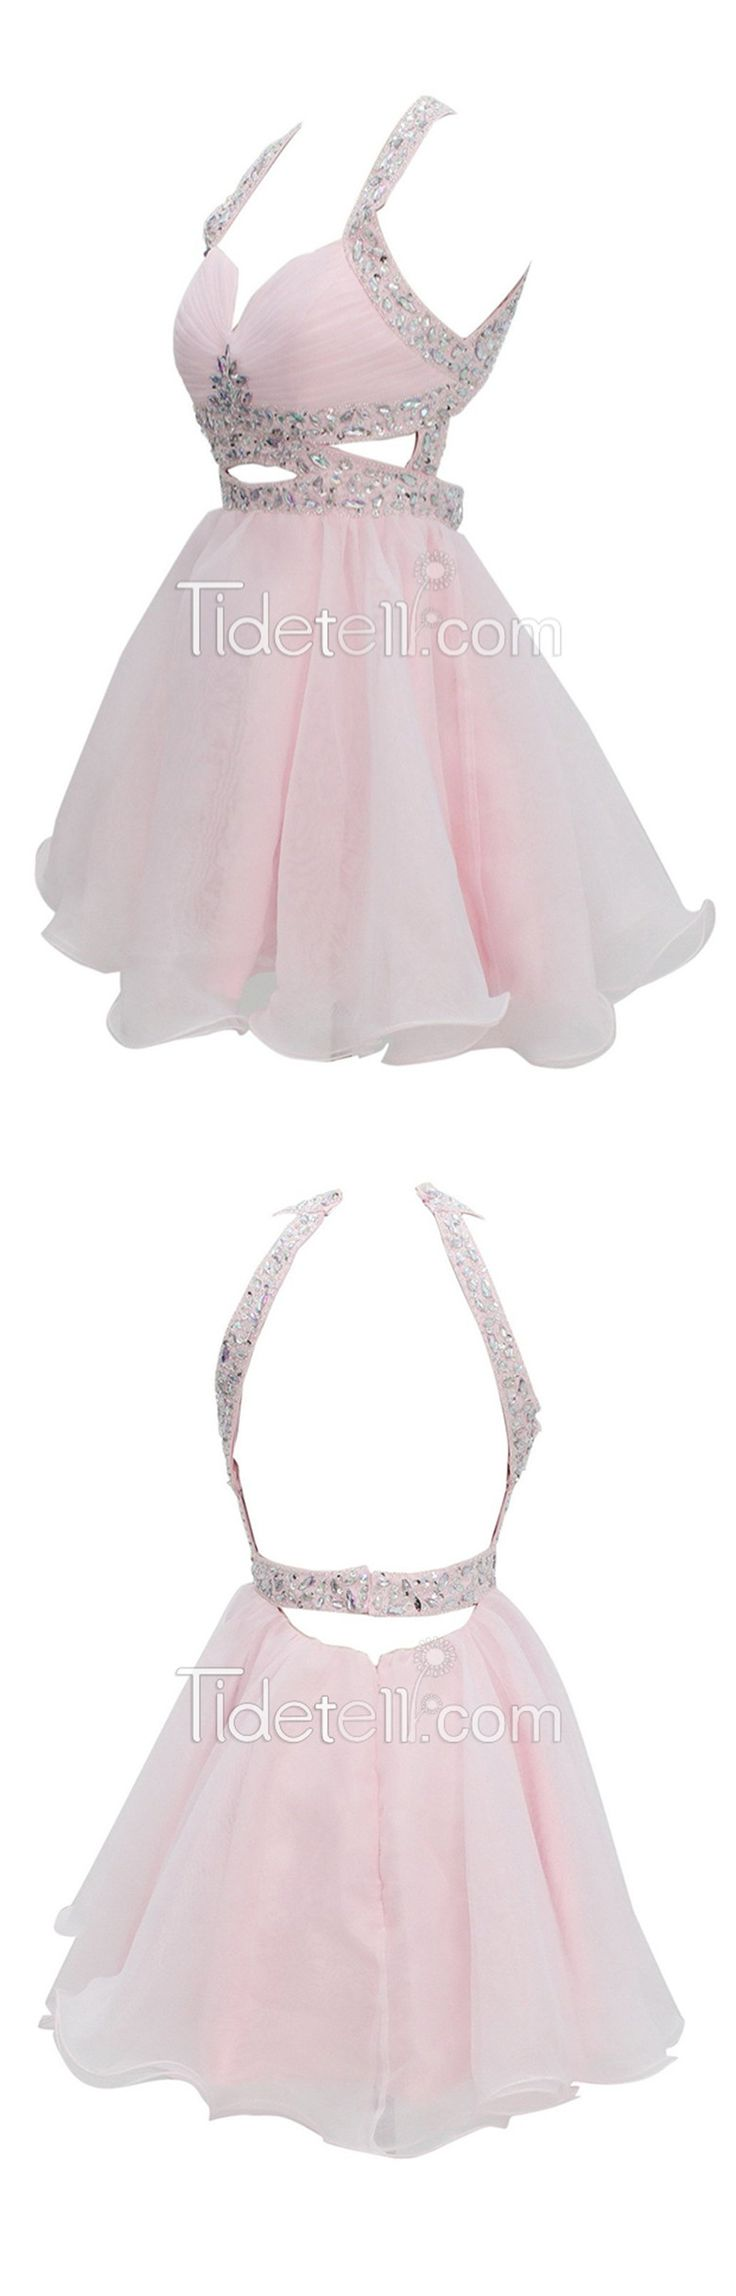 Backless A-line Organza Sweetheart Empire Short Homecoming Dresses Ruched Hollow